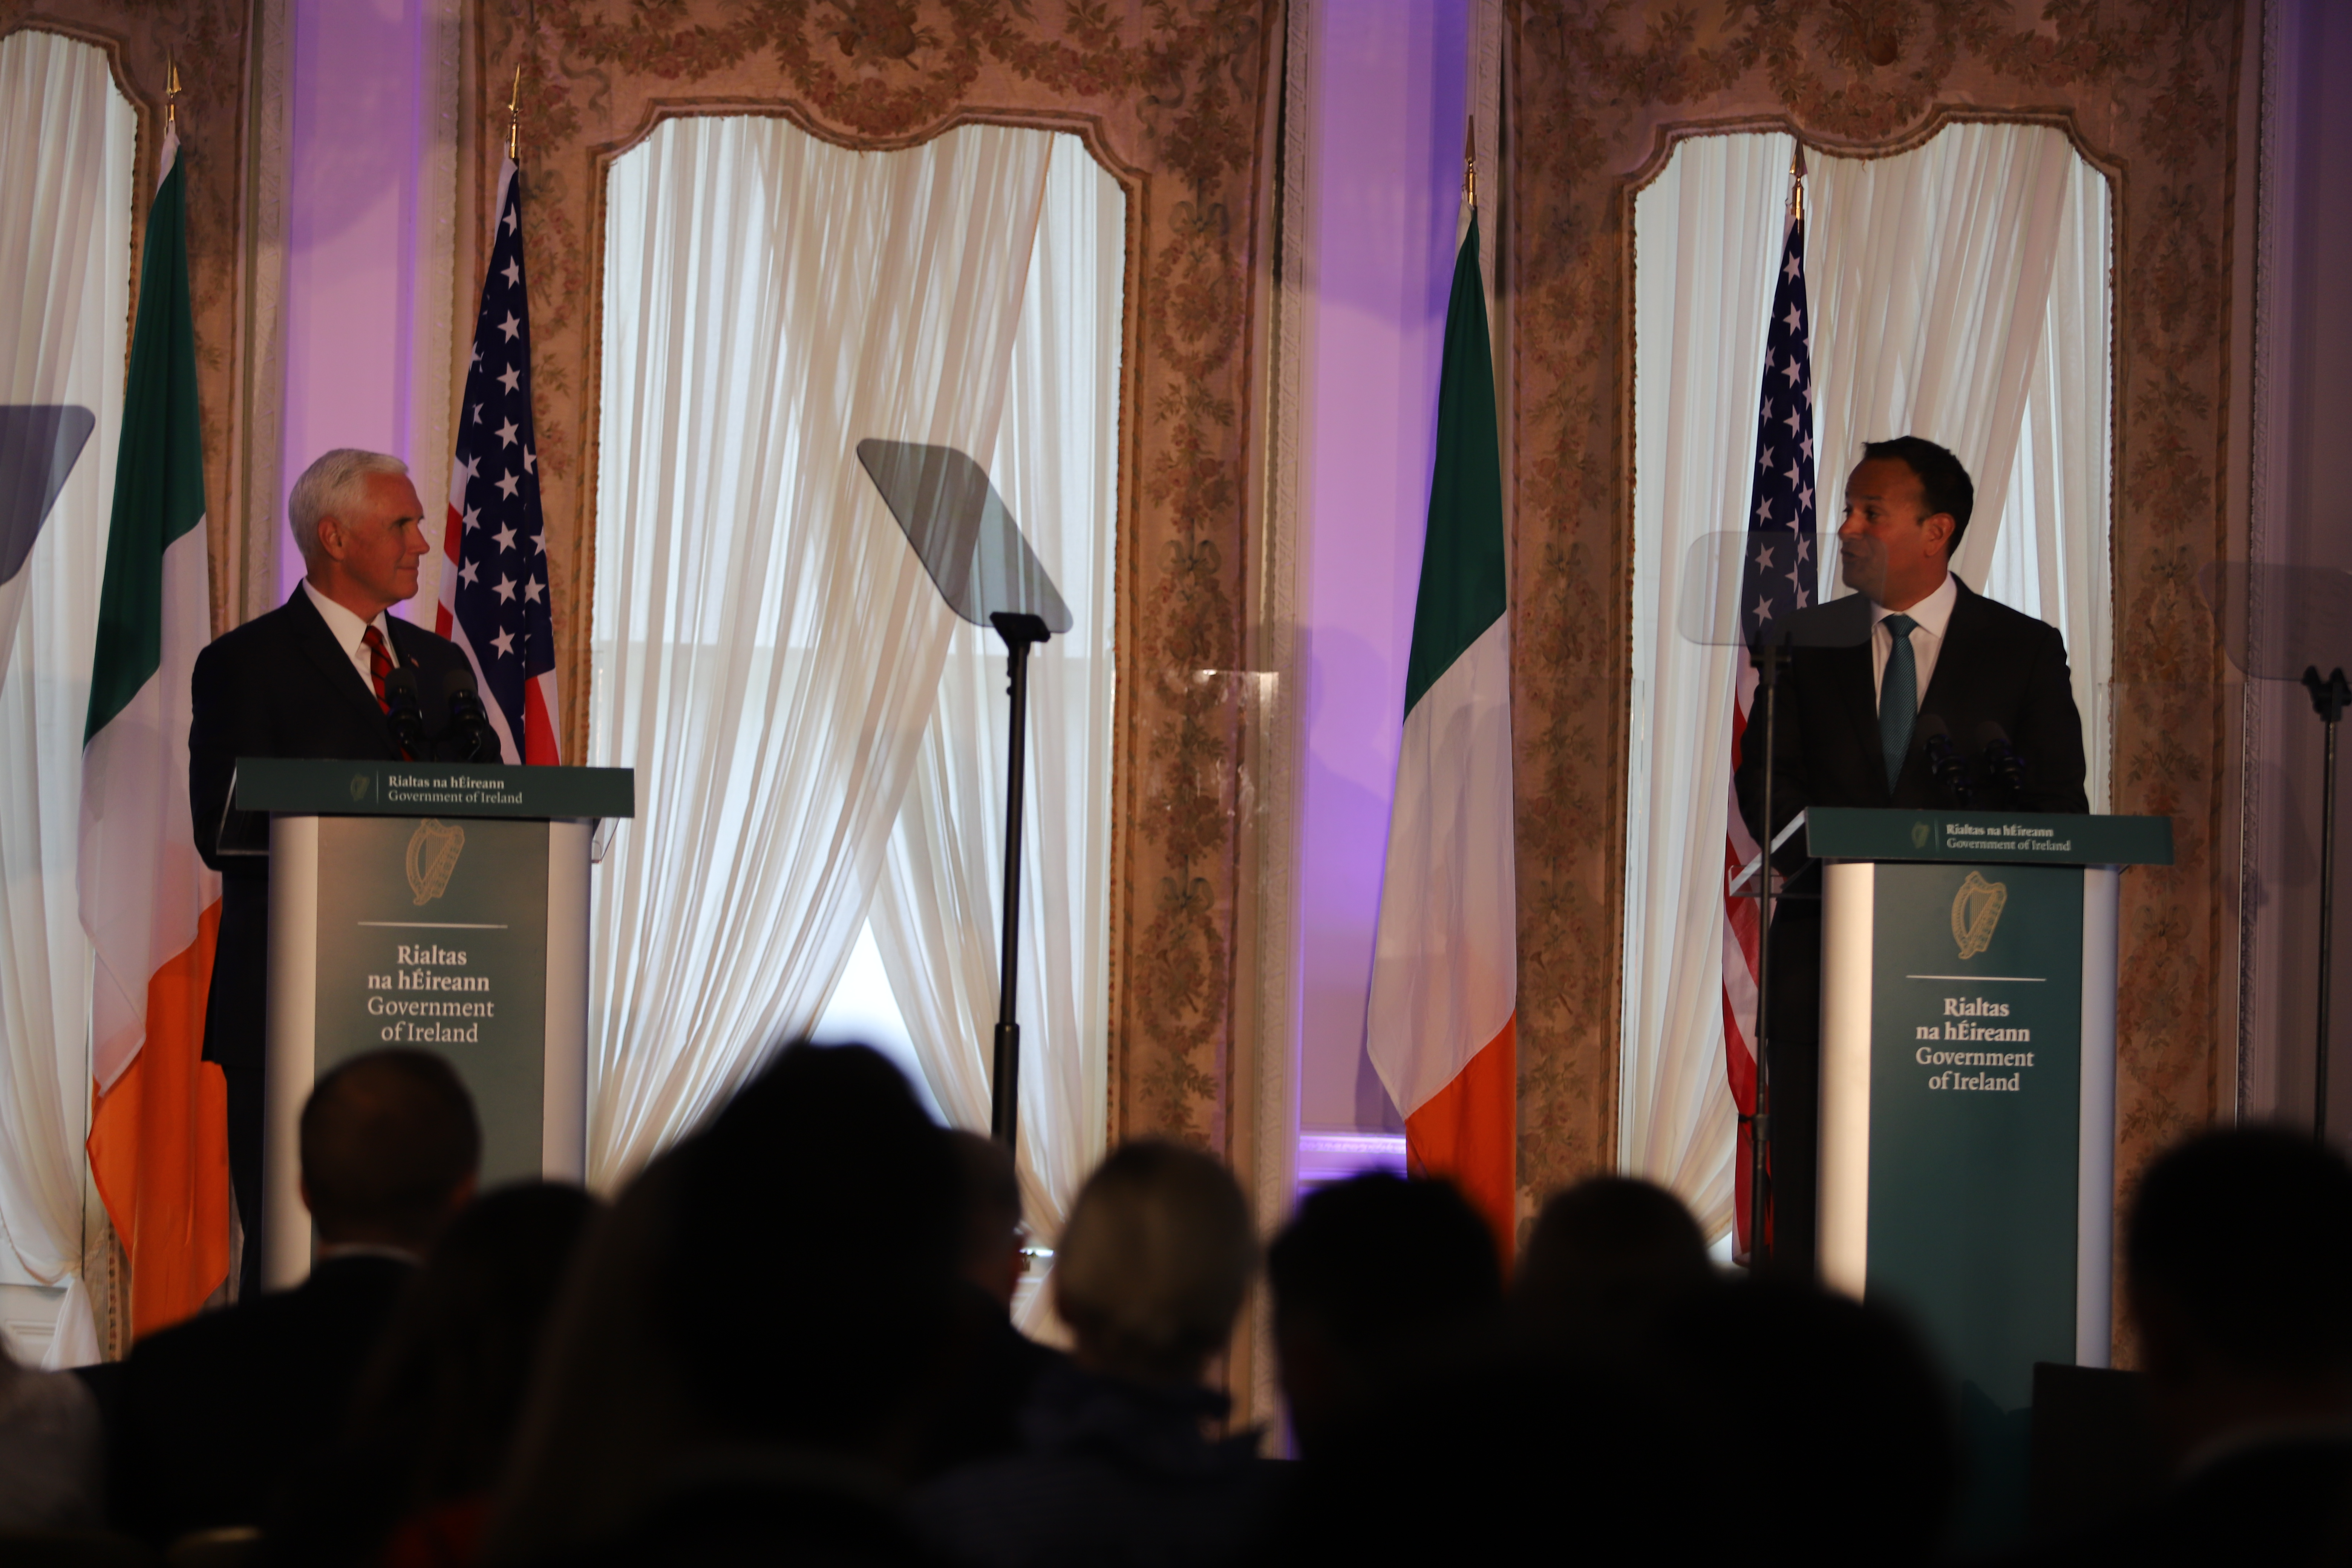 Taoiseach and Mike Pence 03.09.19